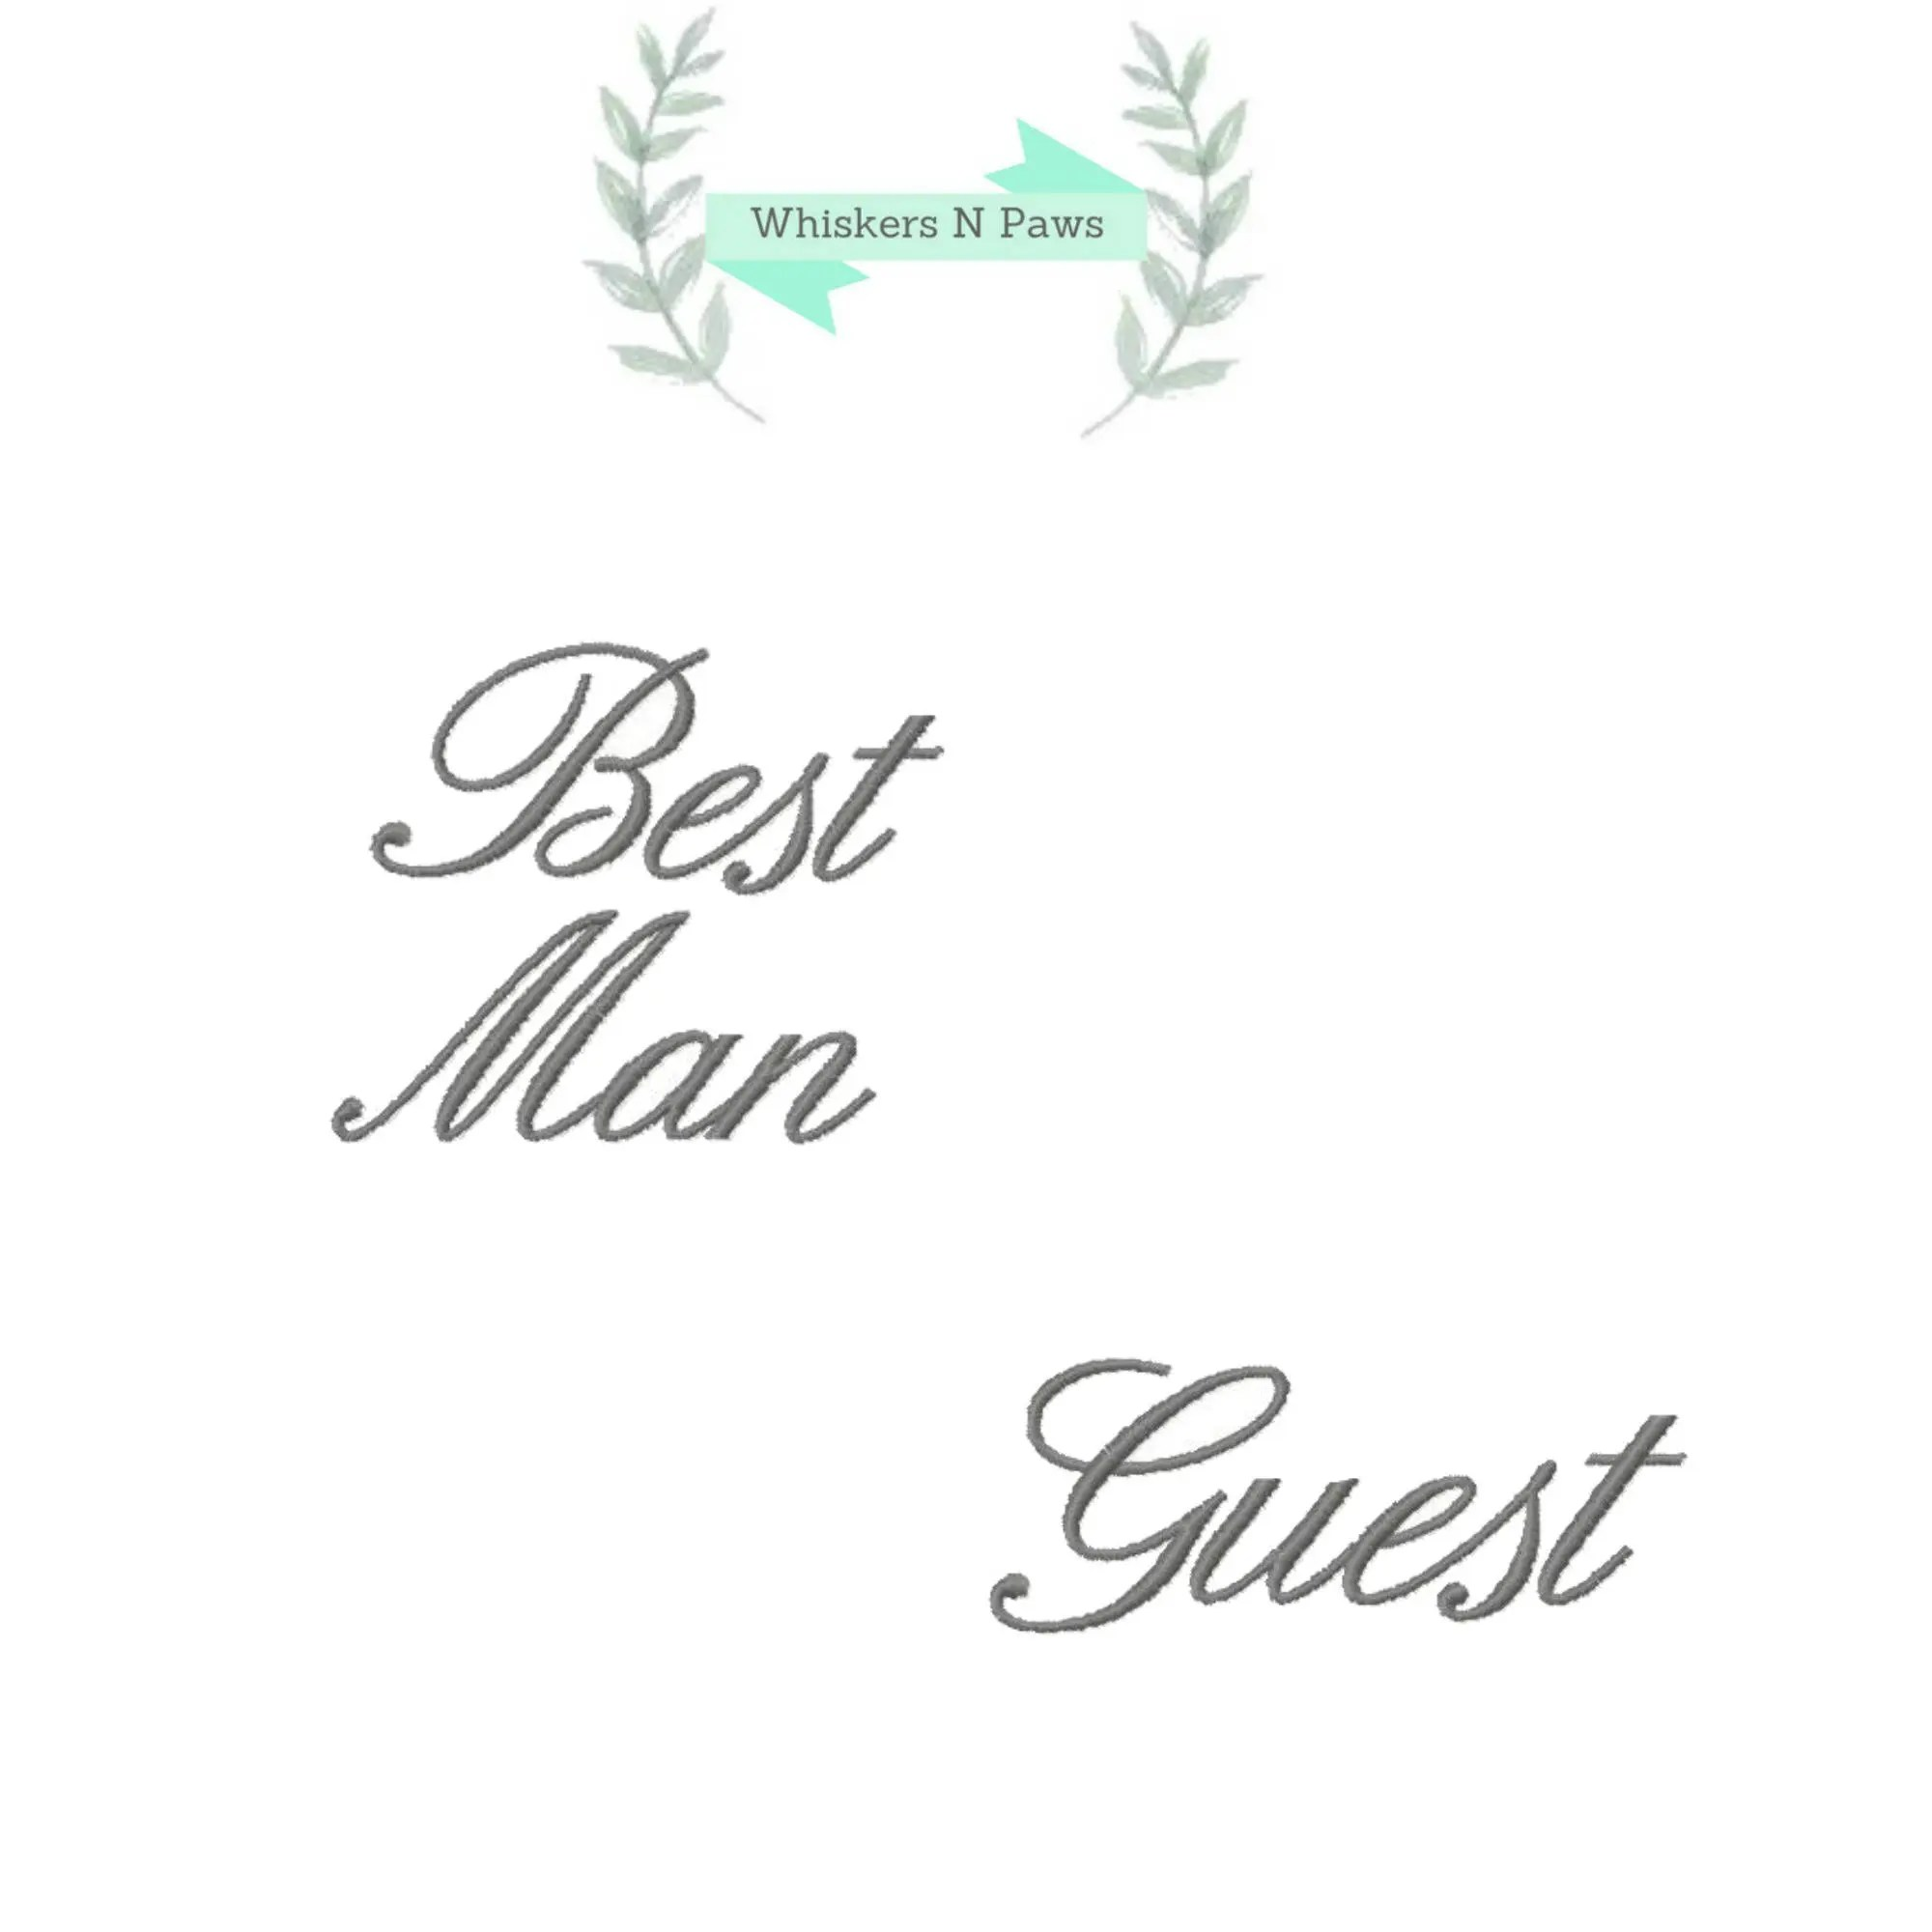 Set of 2 Wedding Bridal Party Embroidery Designs. Best Man